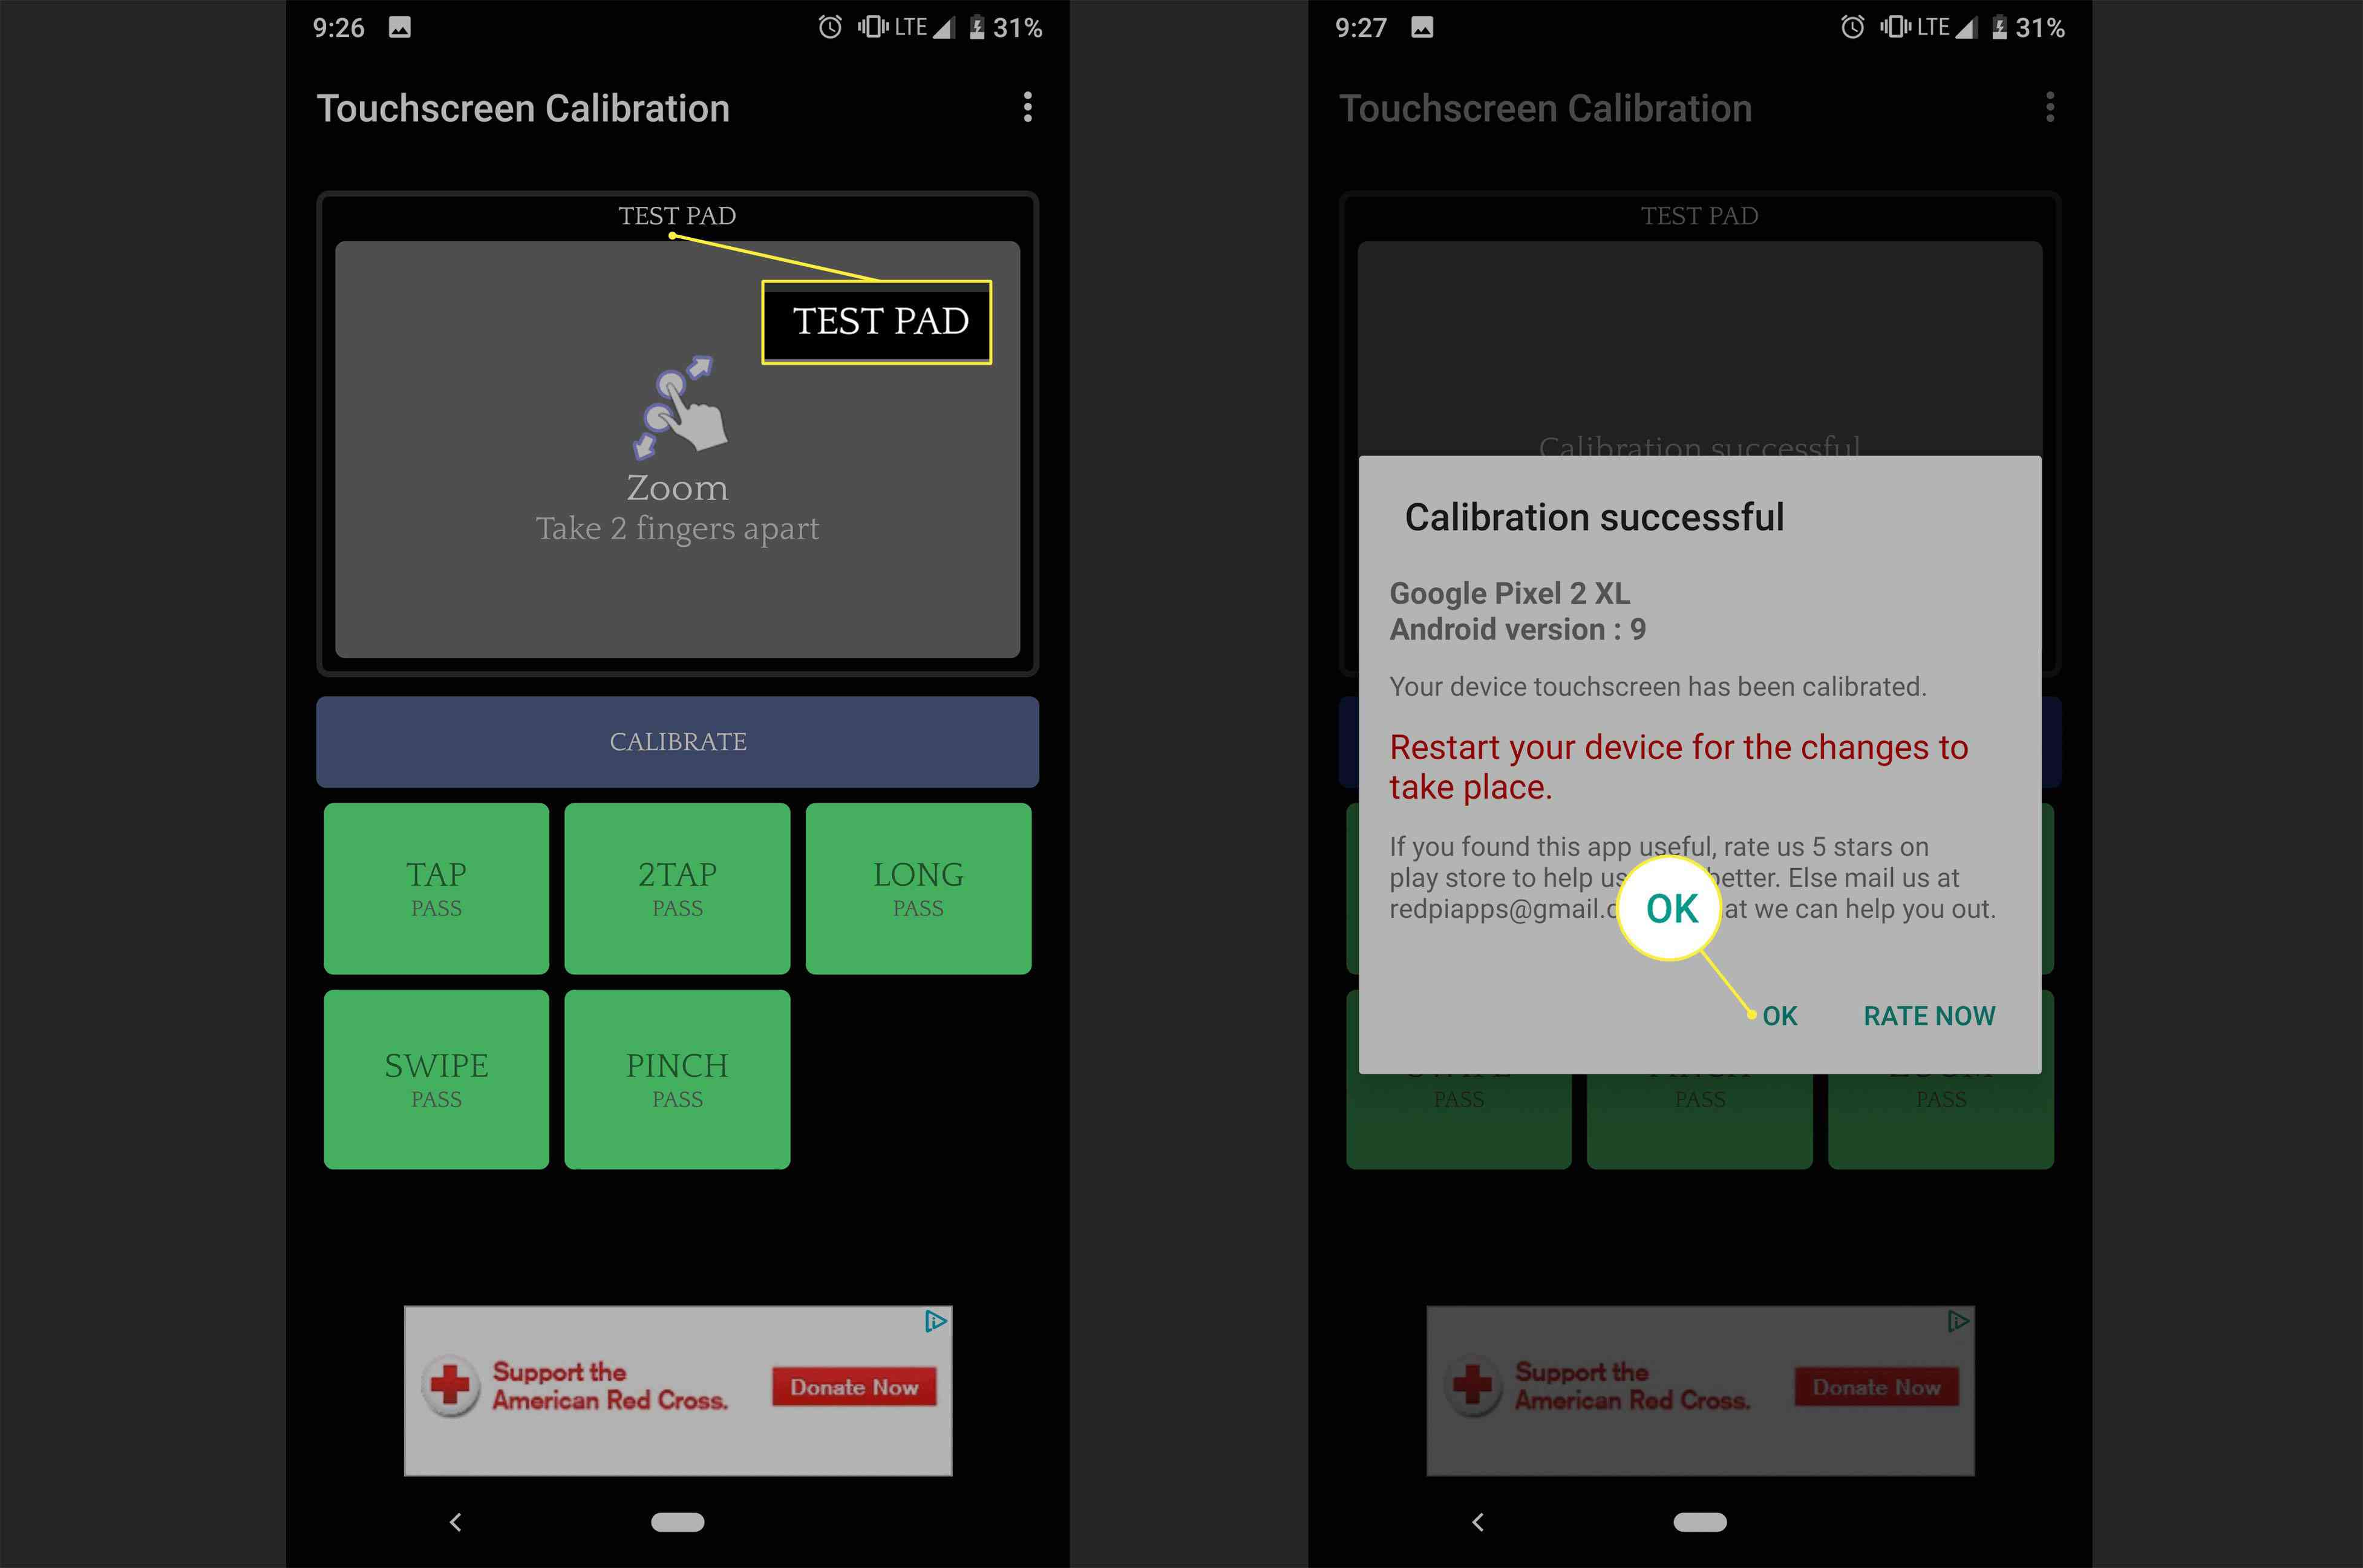 How to use Calibration on an Android phone